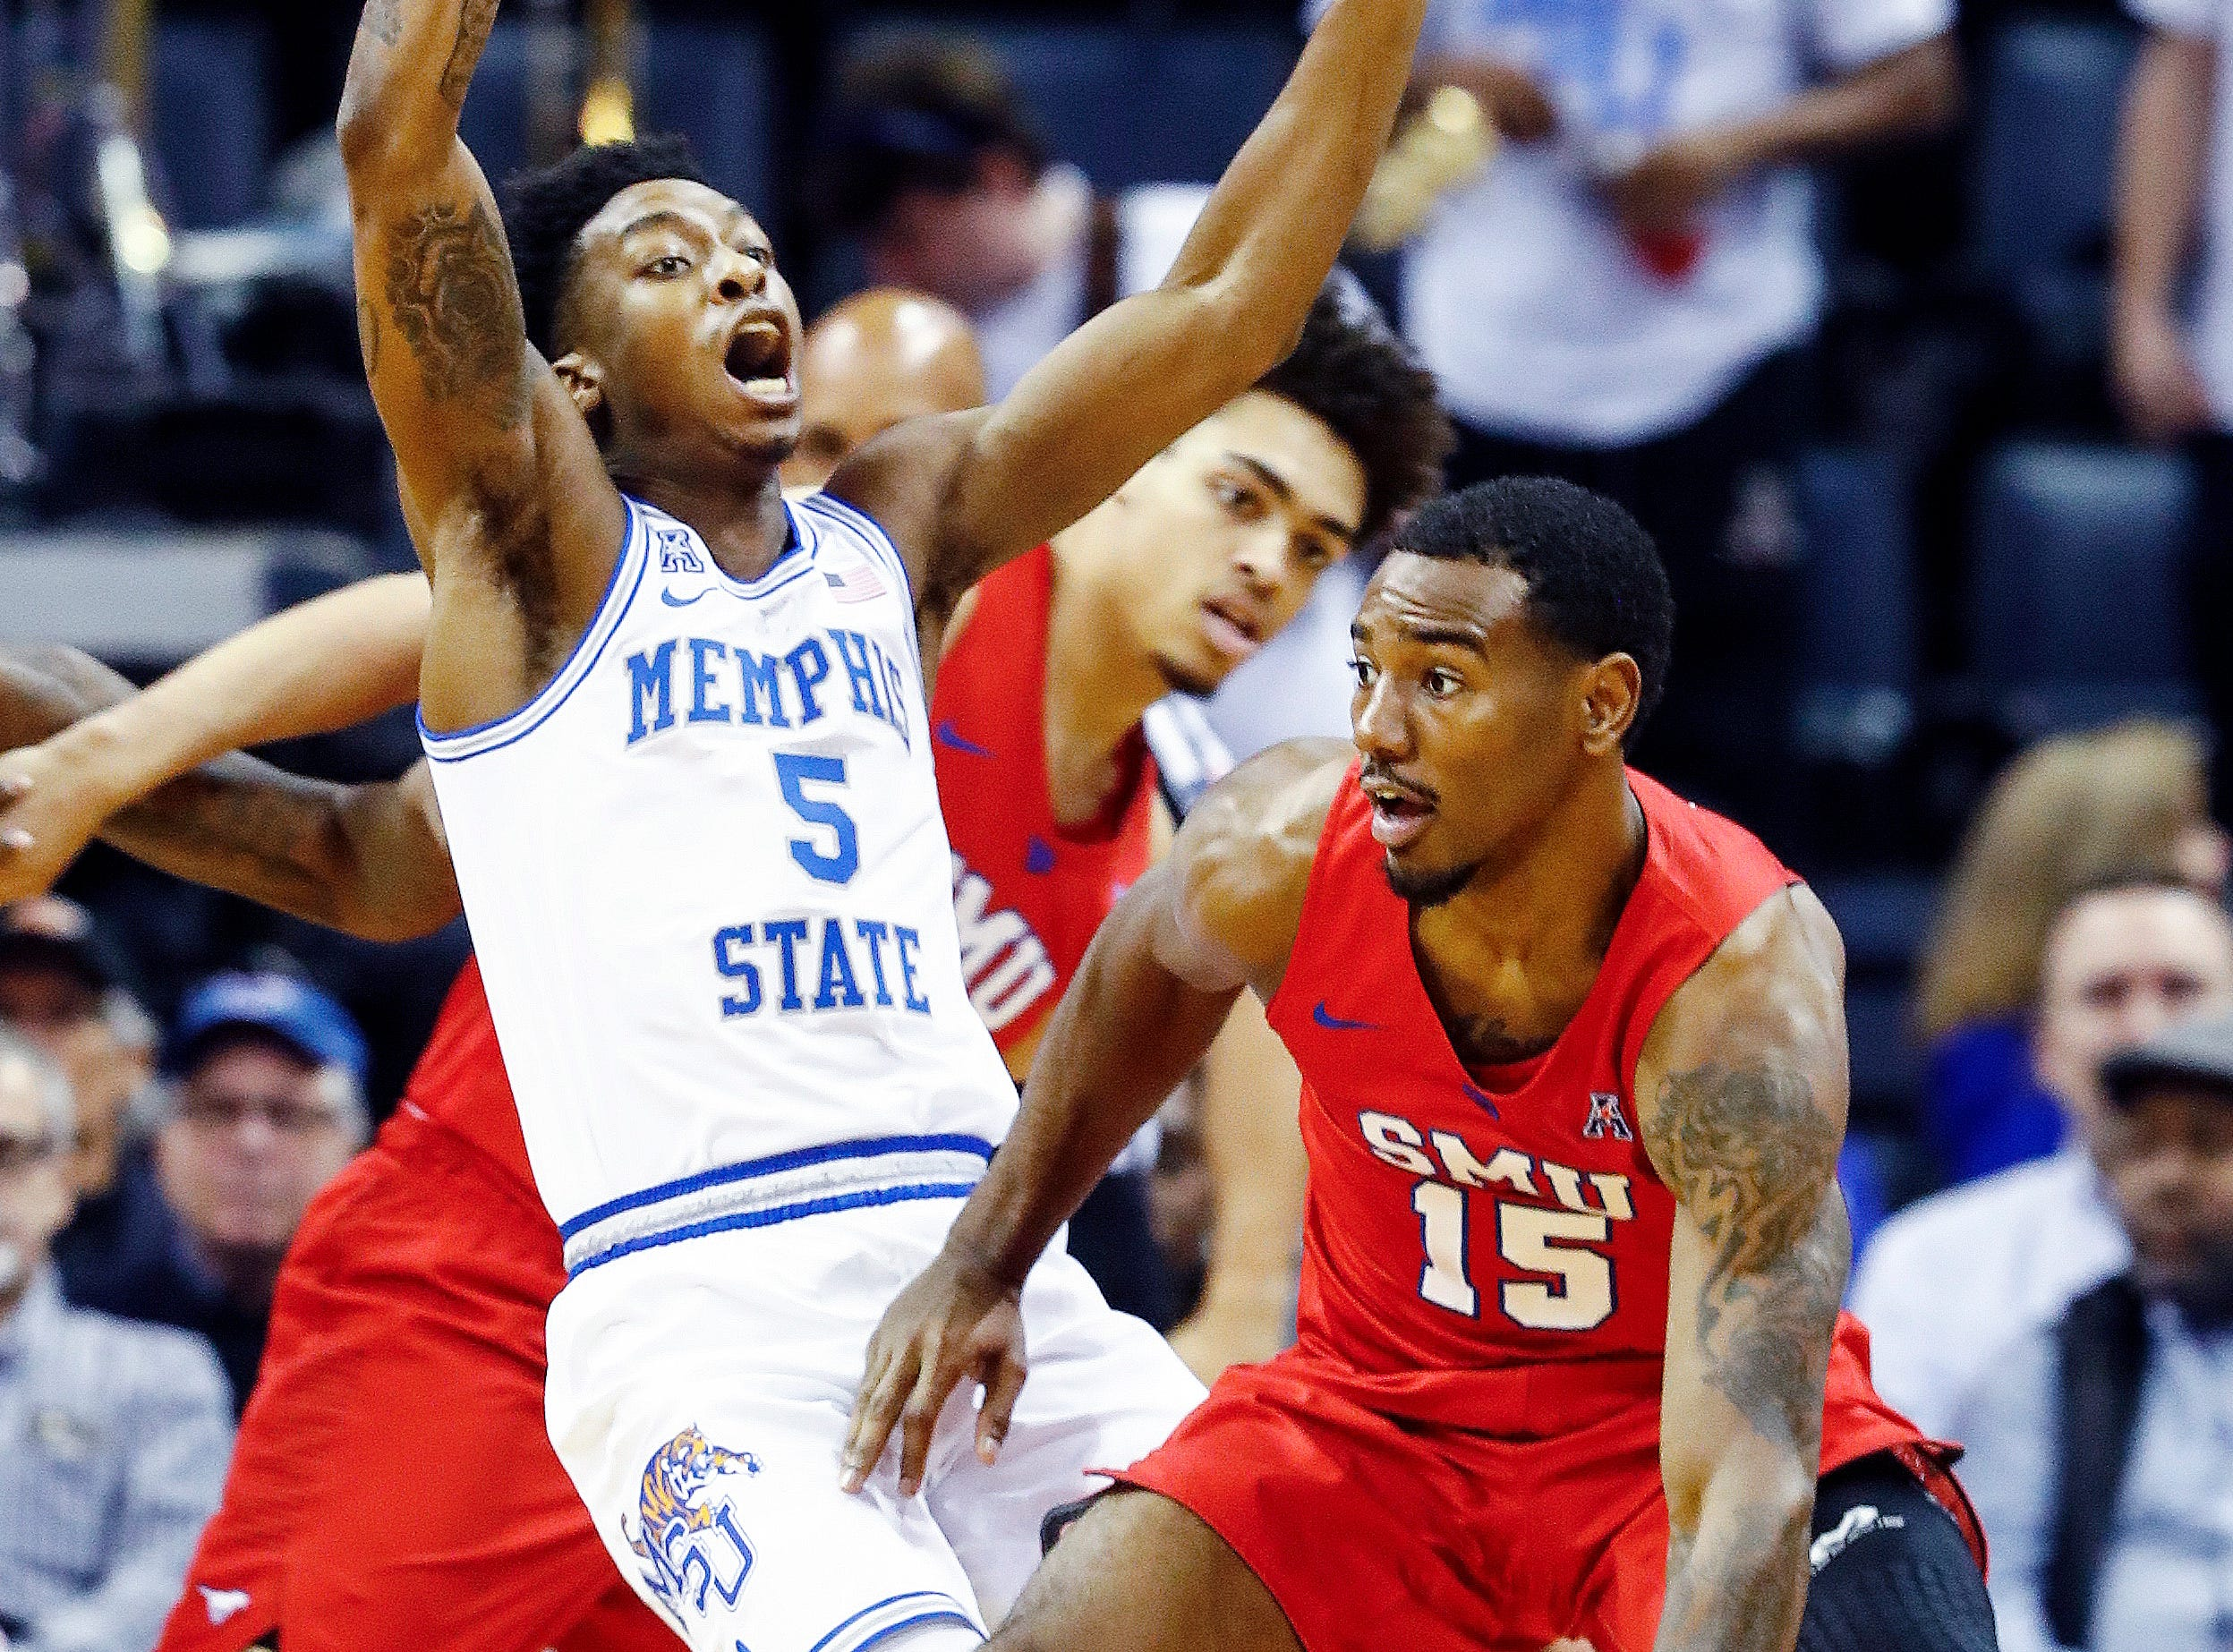 Memphis guard Kareem Brewton Jr. (left) applies defensive pressure to SMU guard Isiaha Mike (right) during action at the FedExForum, Saturday, January 19, 2019.